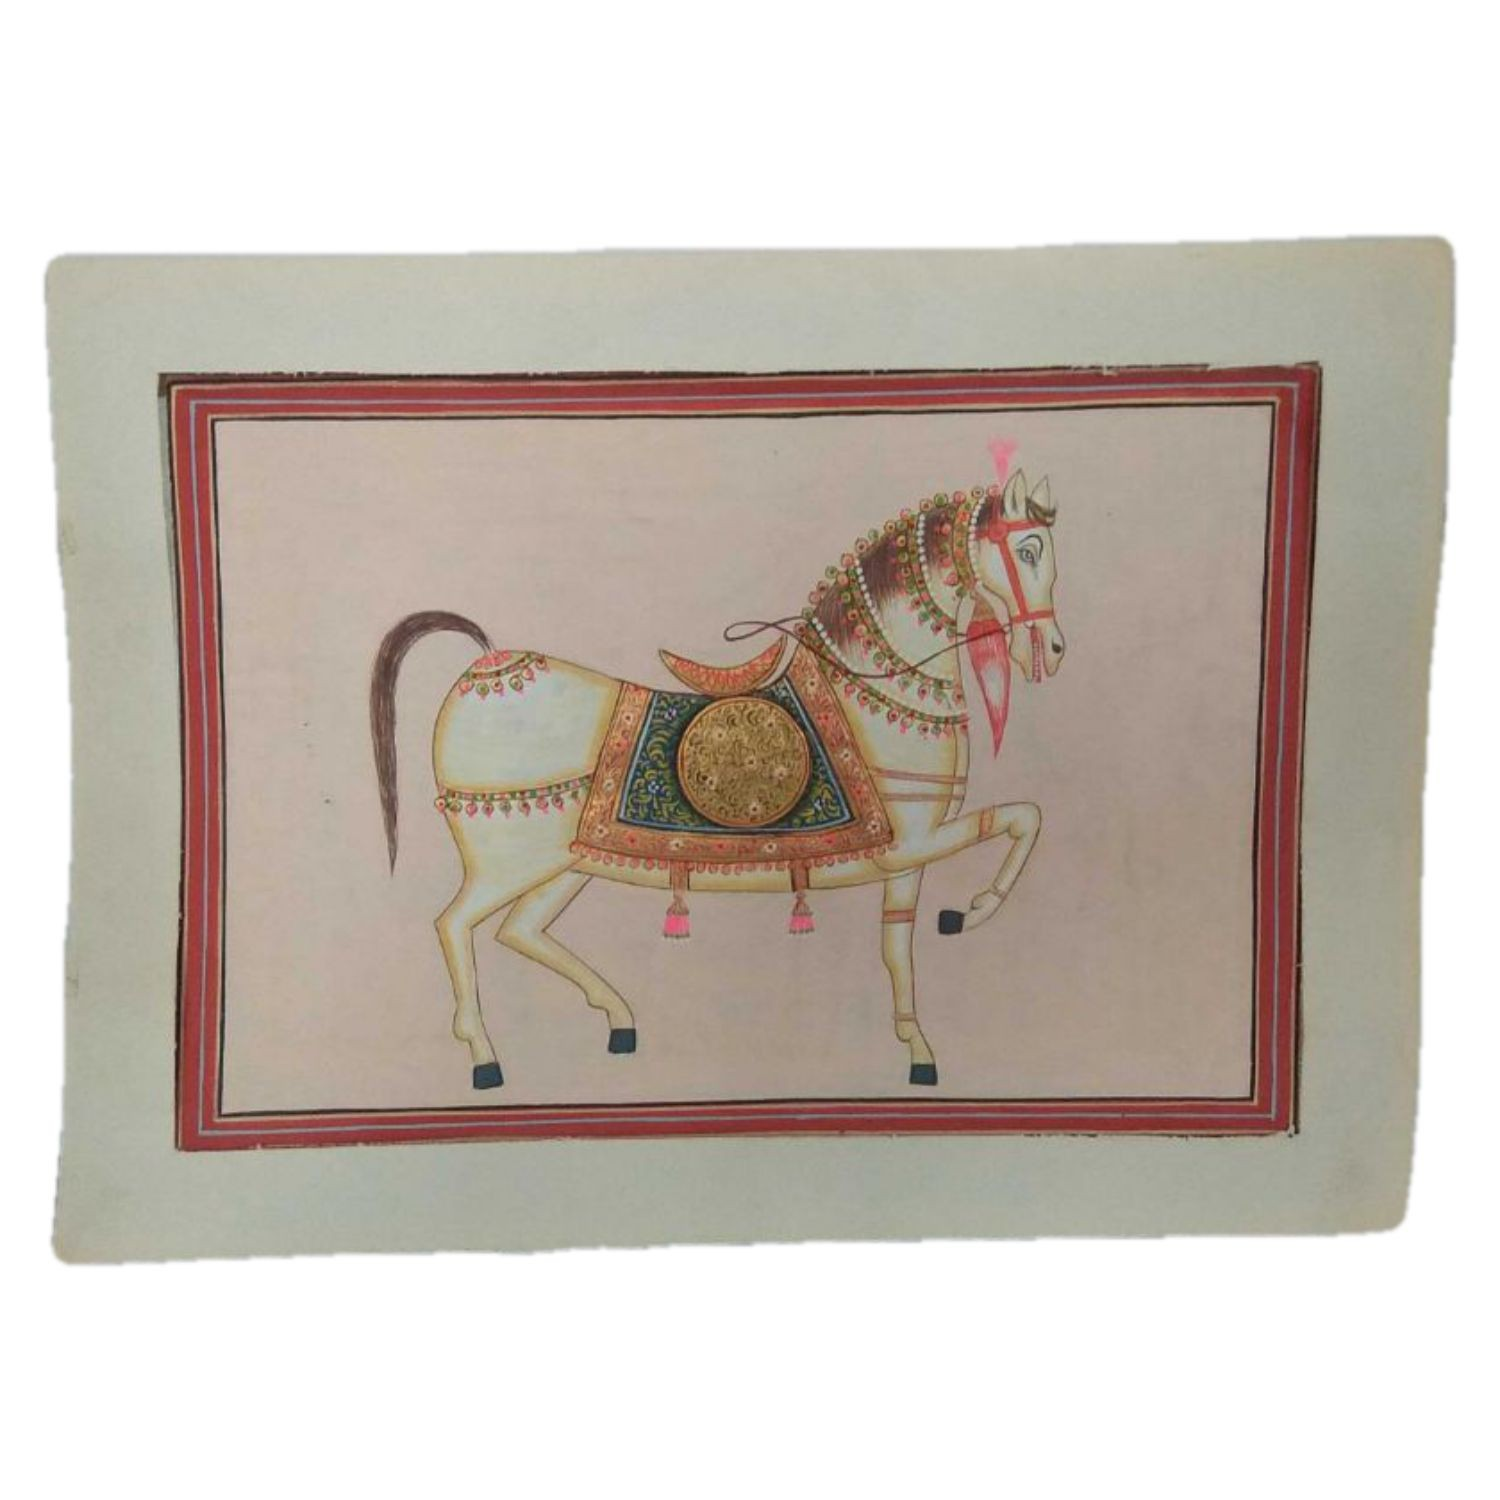 """India Meets India Handicraft Mughal Art Wall Painting, Wall Art, Wall Décor, 11""""X9"""" Inch (Without Frame), Best Gifting, Made By Awarded Indian Artisan"""